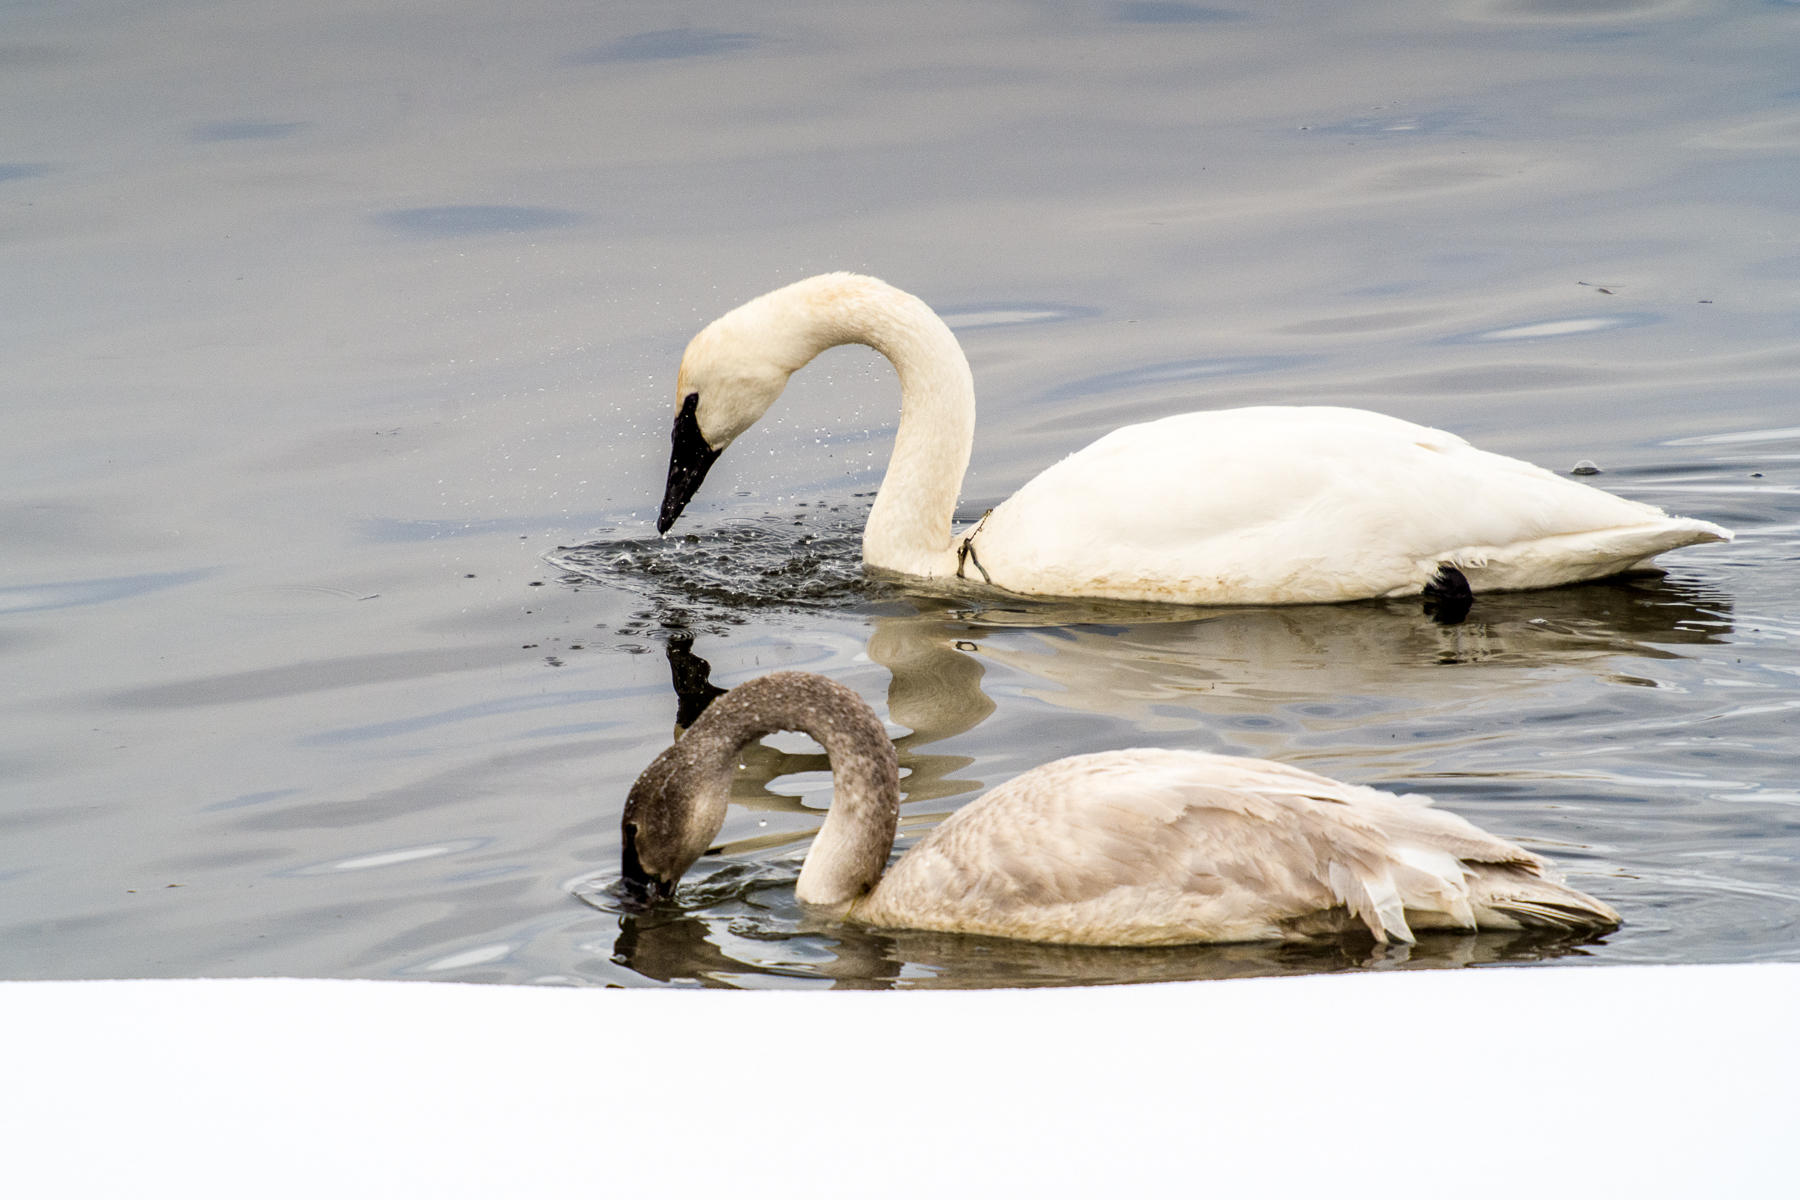 Trumpeter Swan and Signet, Harriman State Park, Idaho : wildlife : TIMOTHY FLOYD PHOTOGRAPHER, NATURE PHOTOGRAPHY, PHOTO ESSAYS, PHOTOJOURNALISM